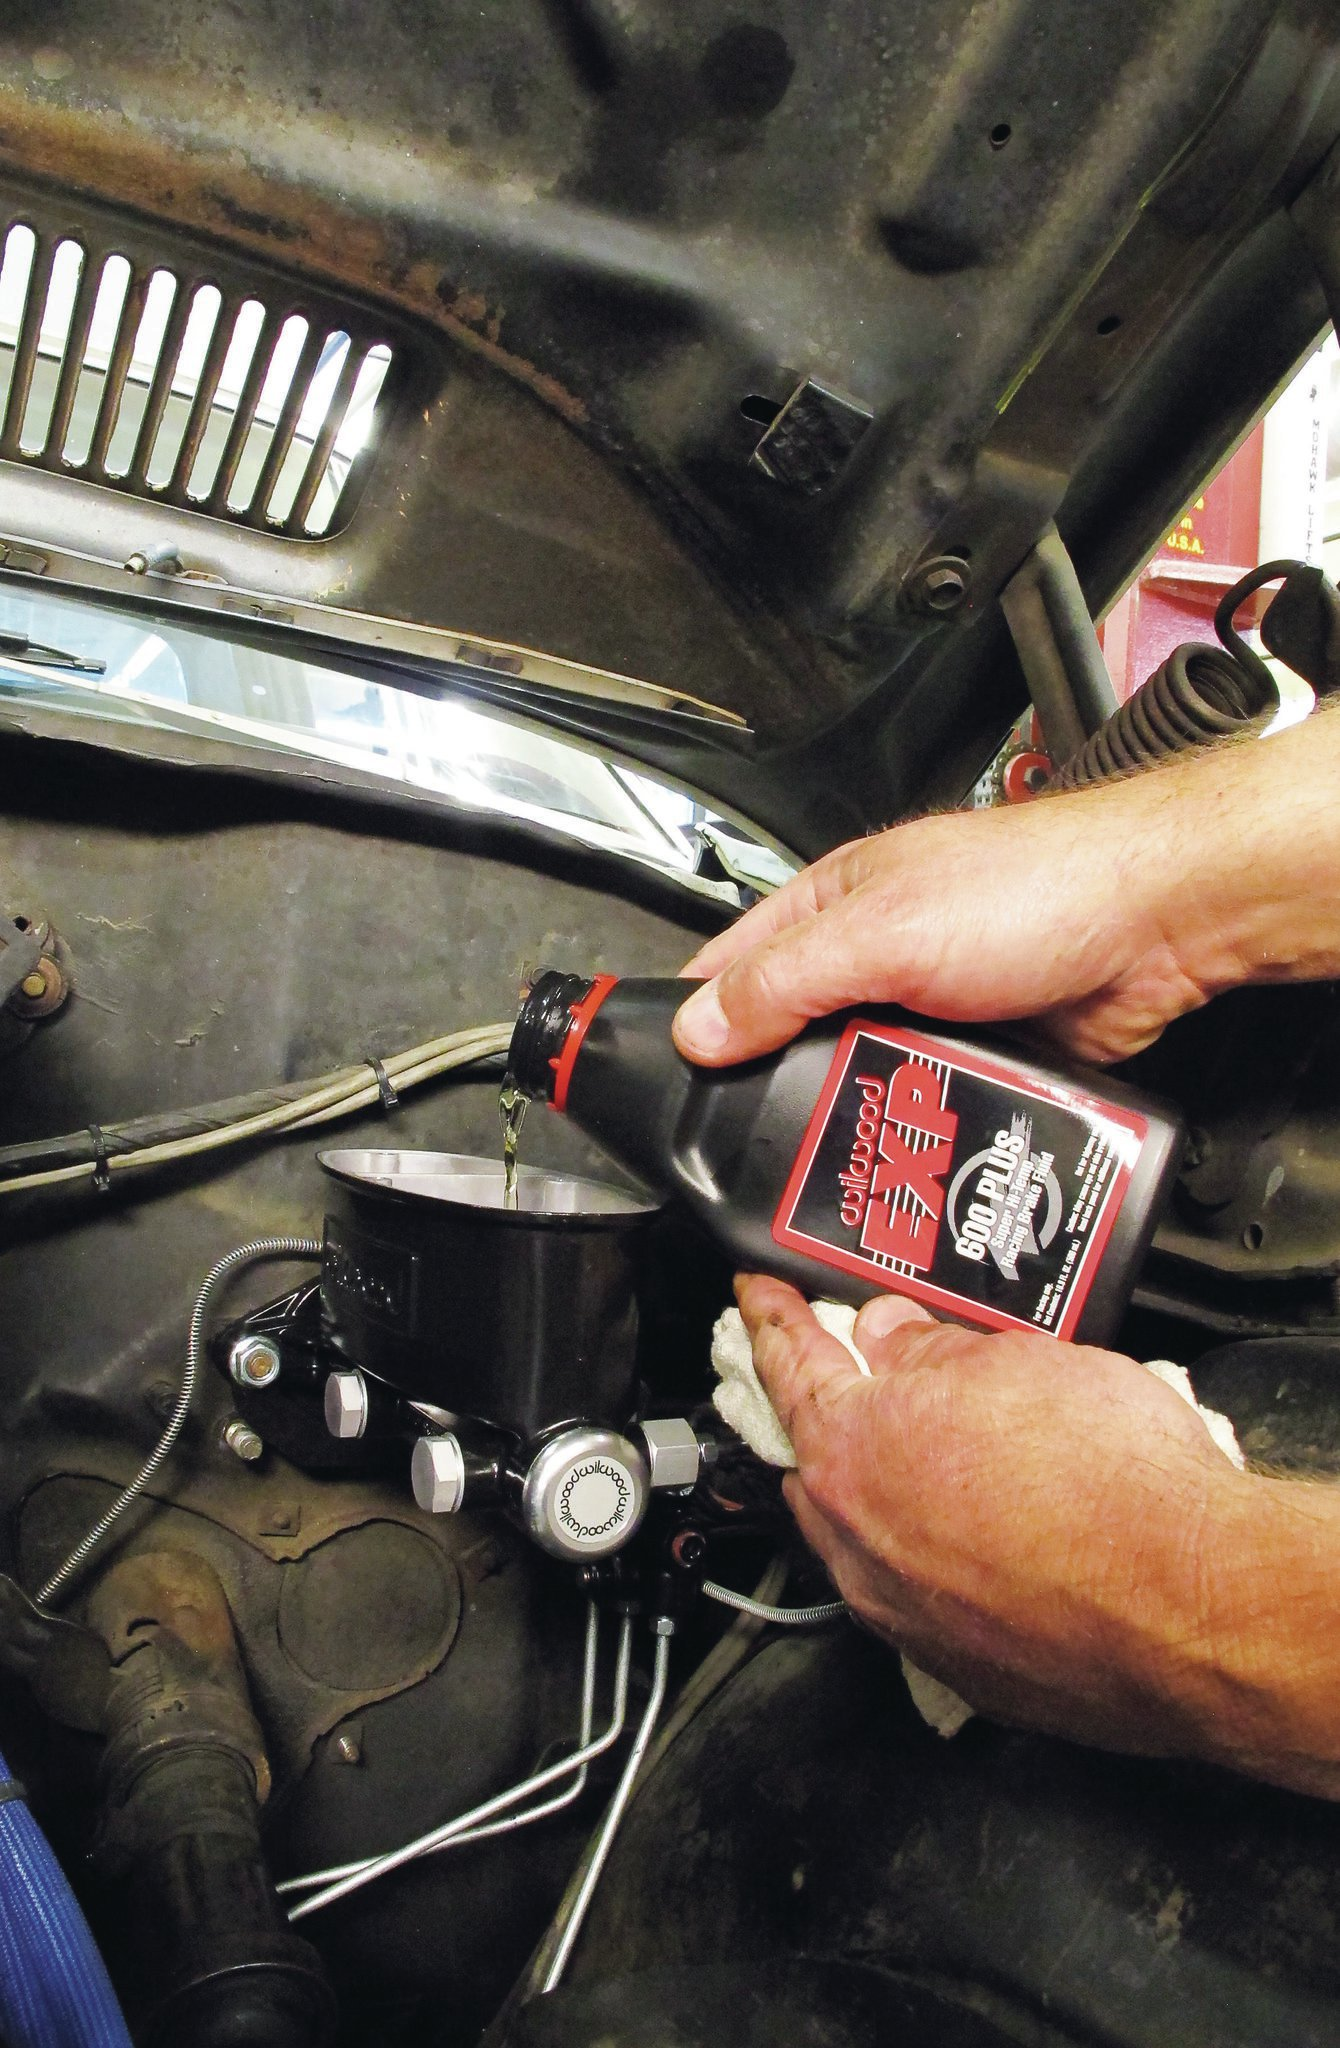 Throughout our testing, we used Wilwood's BP-10 brake pads and EXP 600 Plus racing fluid (PN 290-8478).